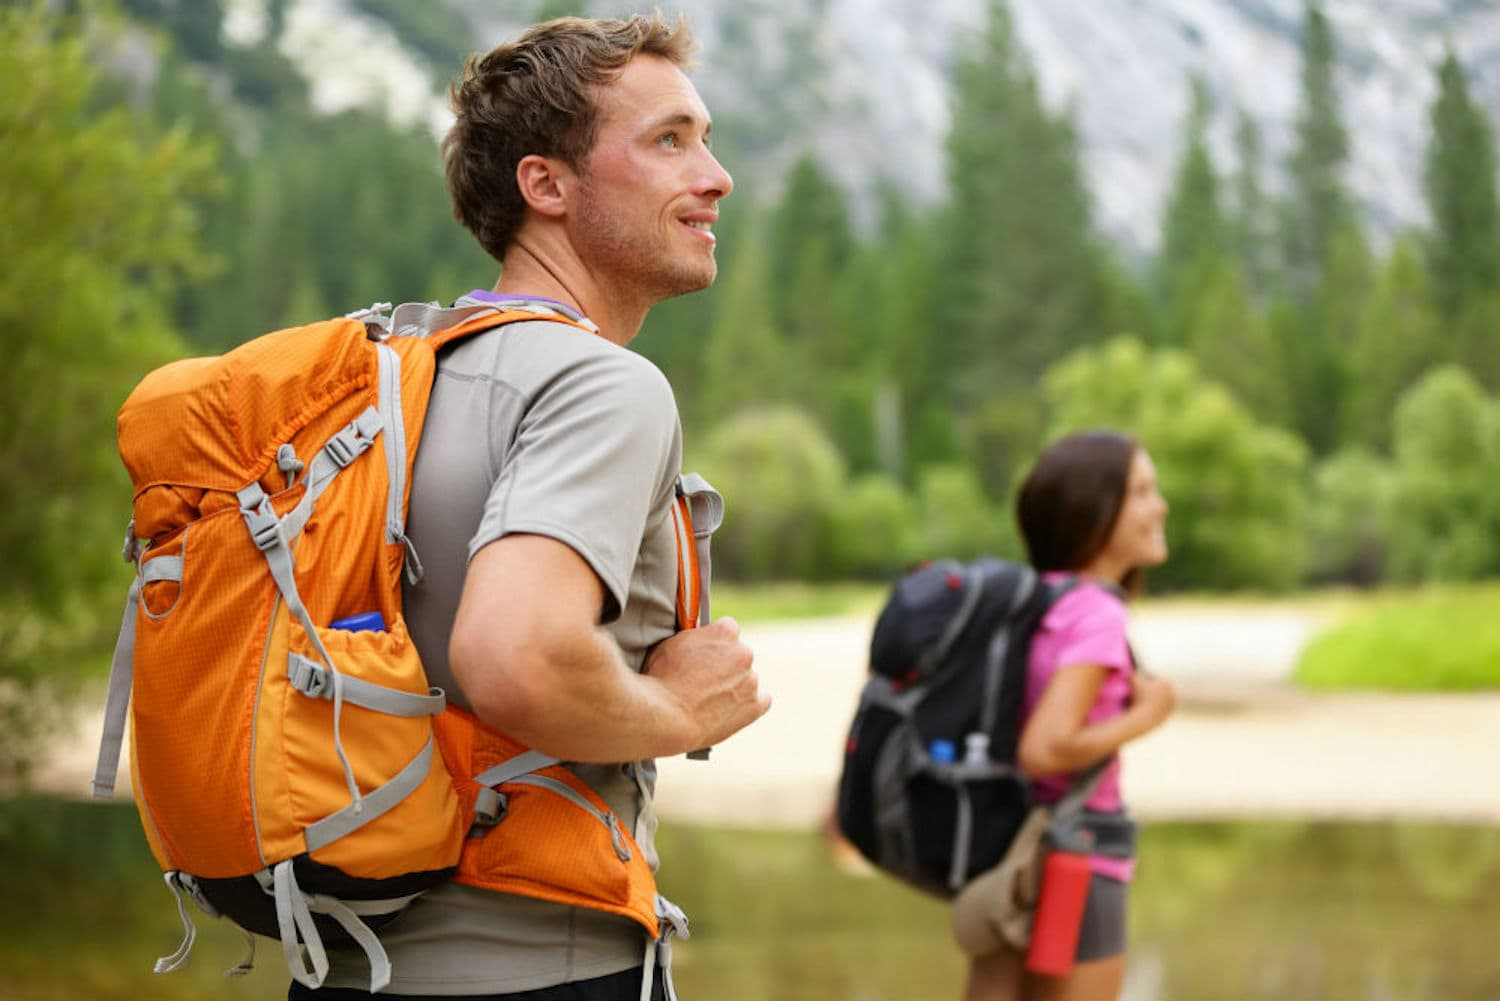 A man and a woman standing with the hiking backpacks